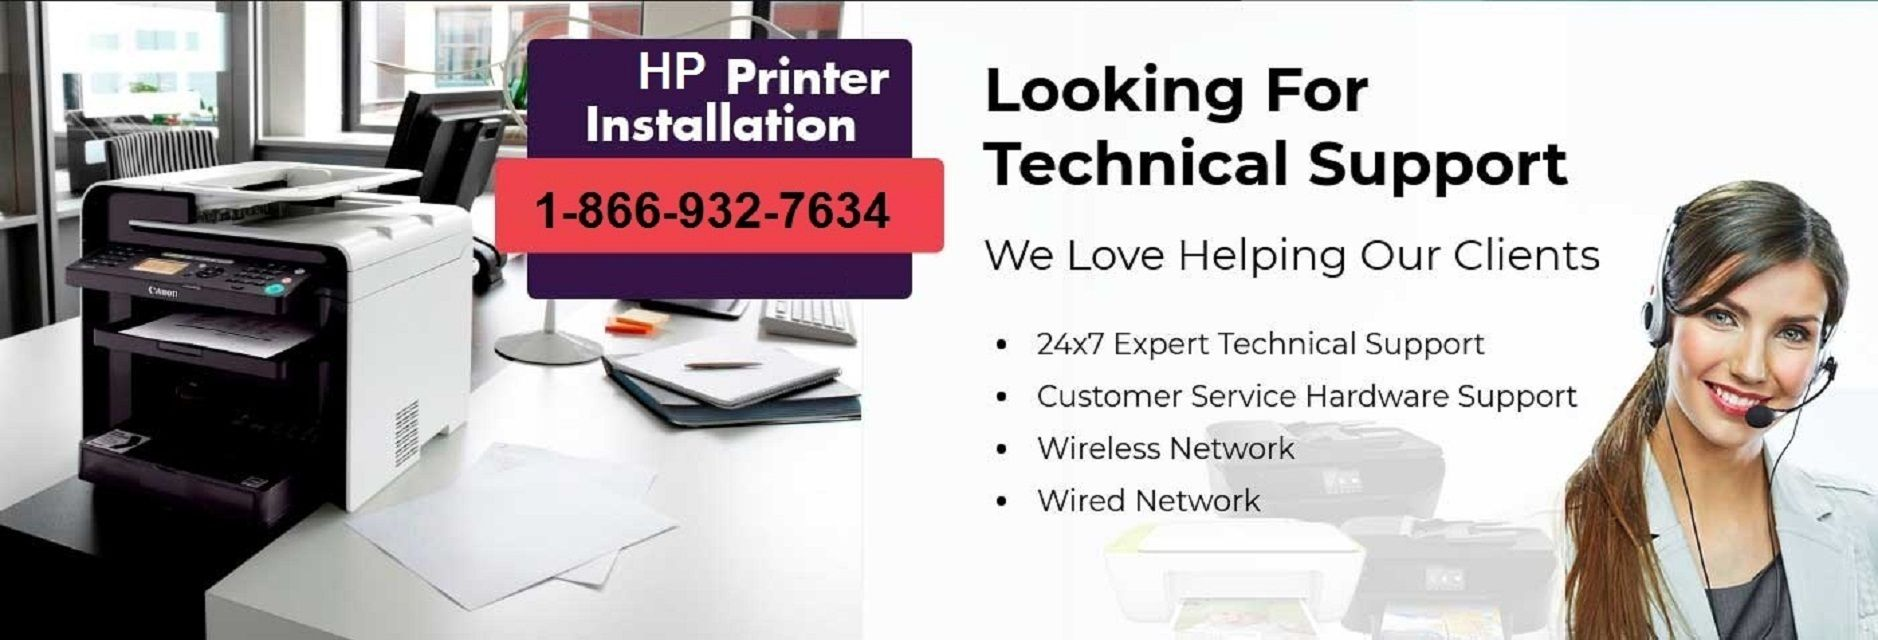 HP Printer Support Number (8669327634) | HP Error | Setup